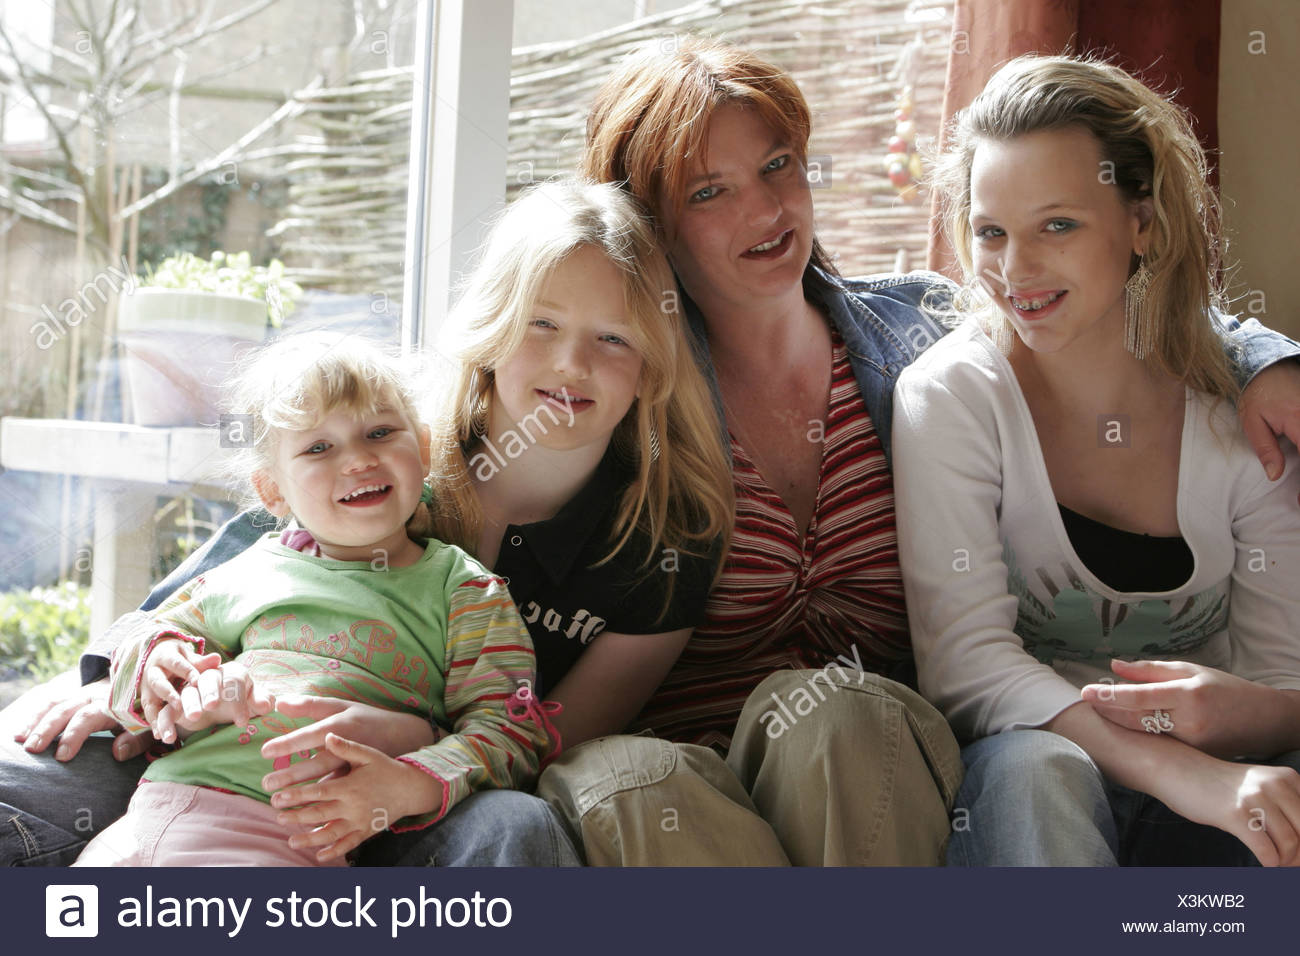 Mid aged woman posing with her three children at home on couch - Stock Image